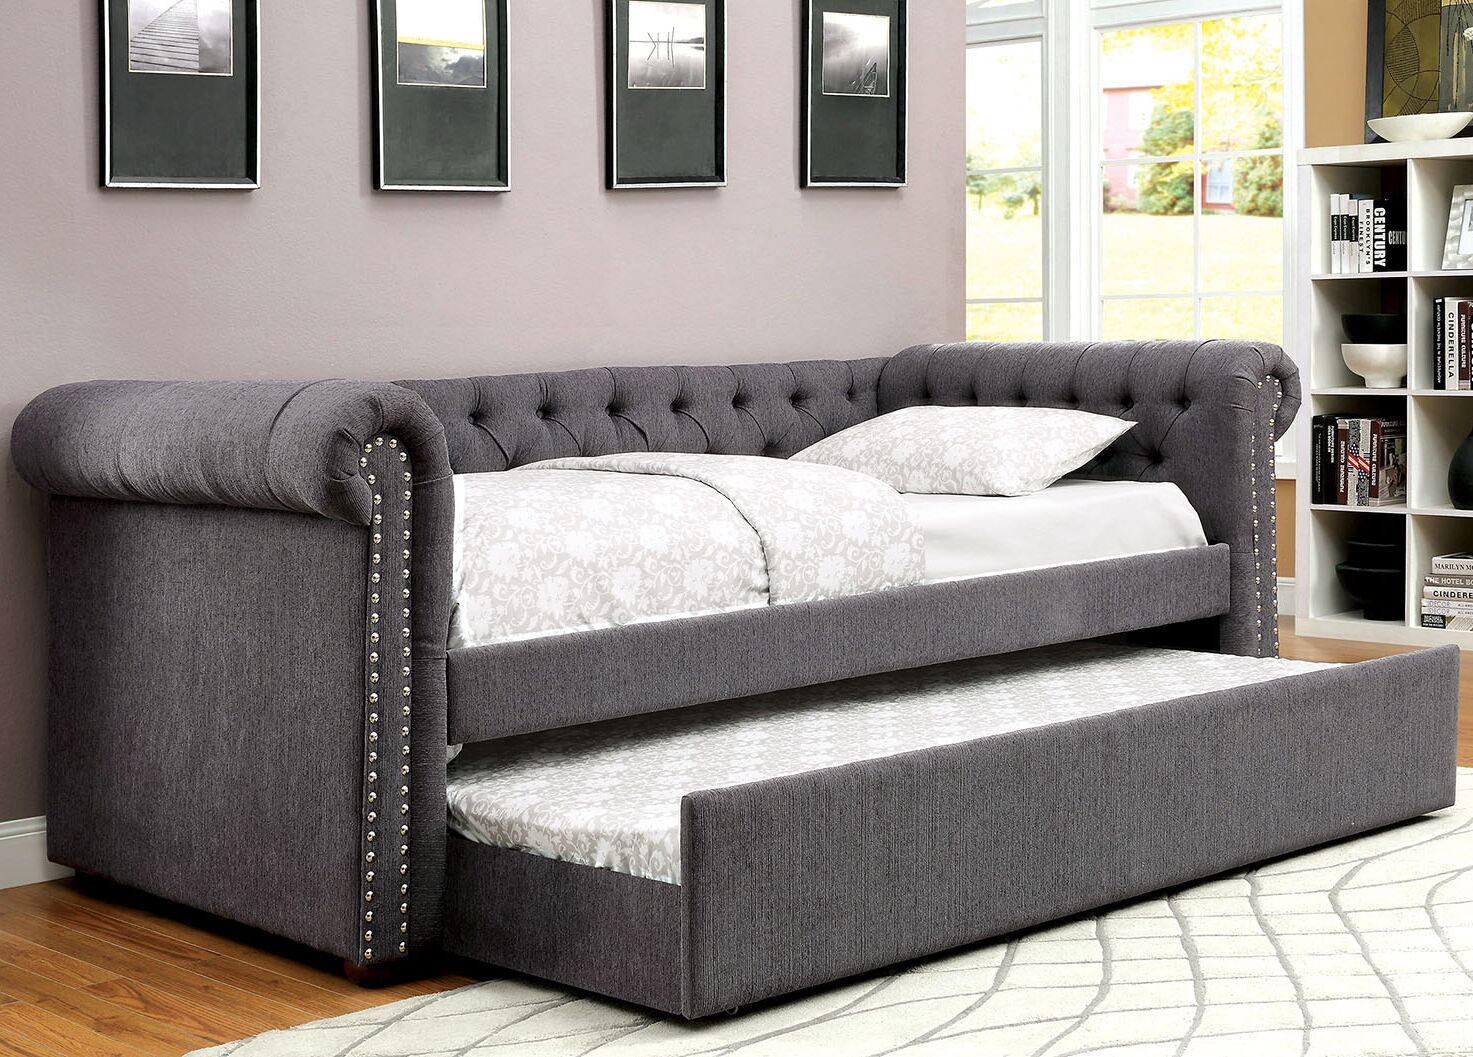 Leona Daybed with Trundle Color: Gray, Size: Full